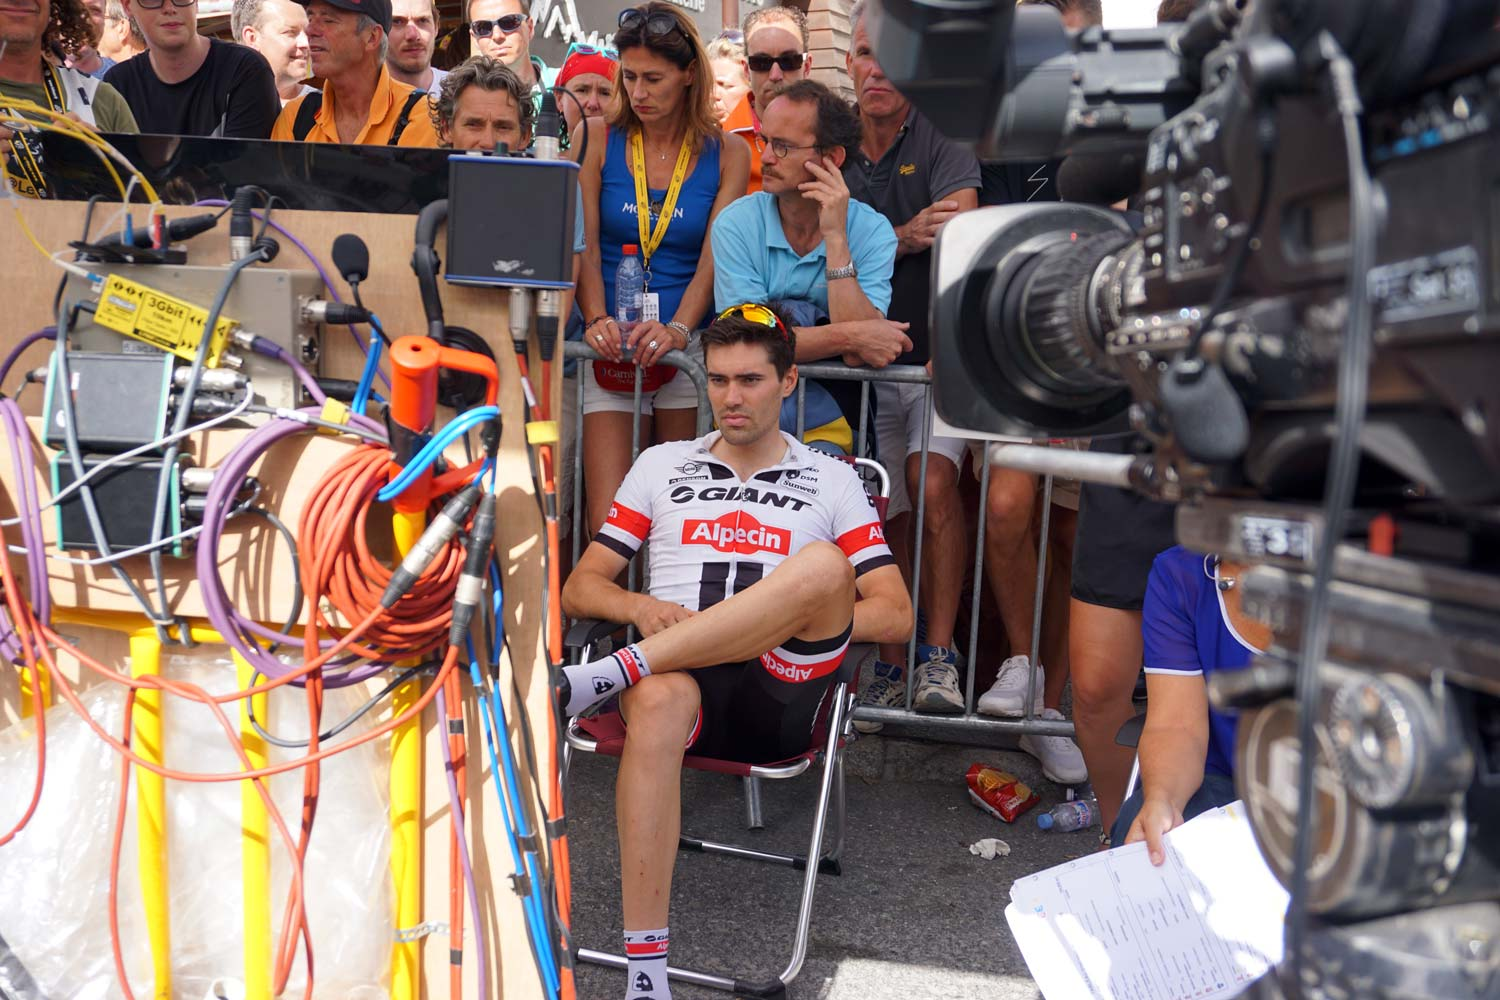 Don't miss a moment of the action... every stage of the 104th Tour de France will be shown in its entirety on SBS.